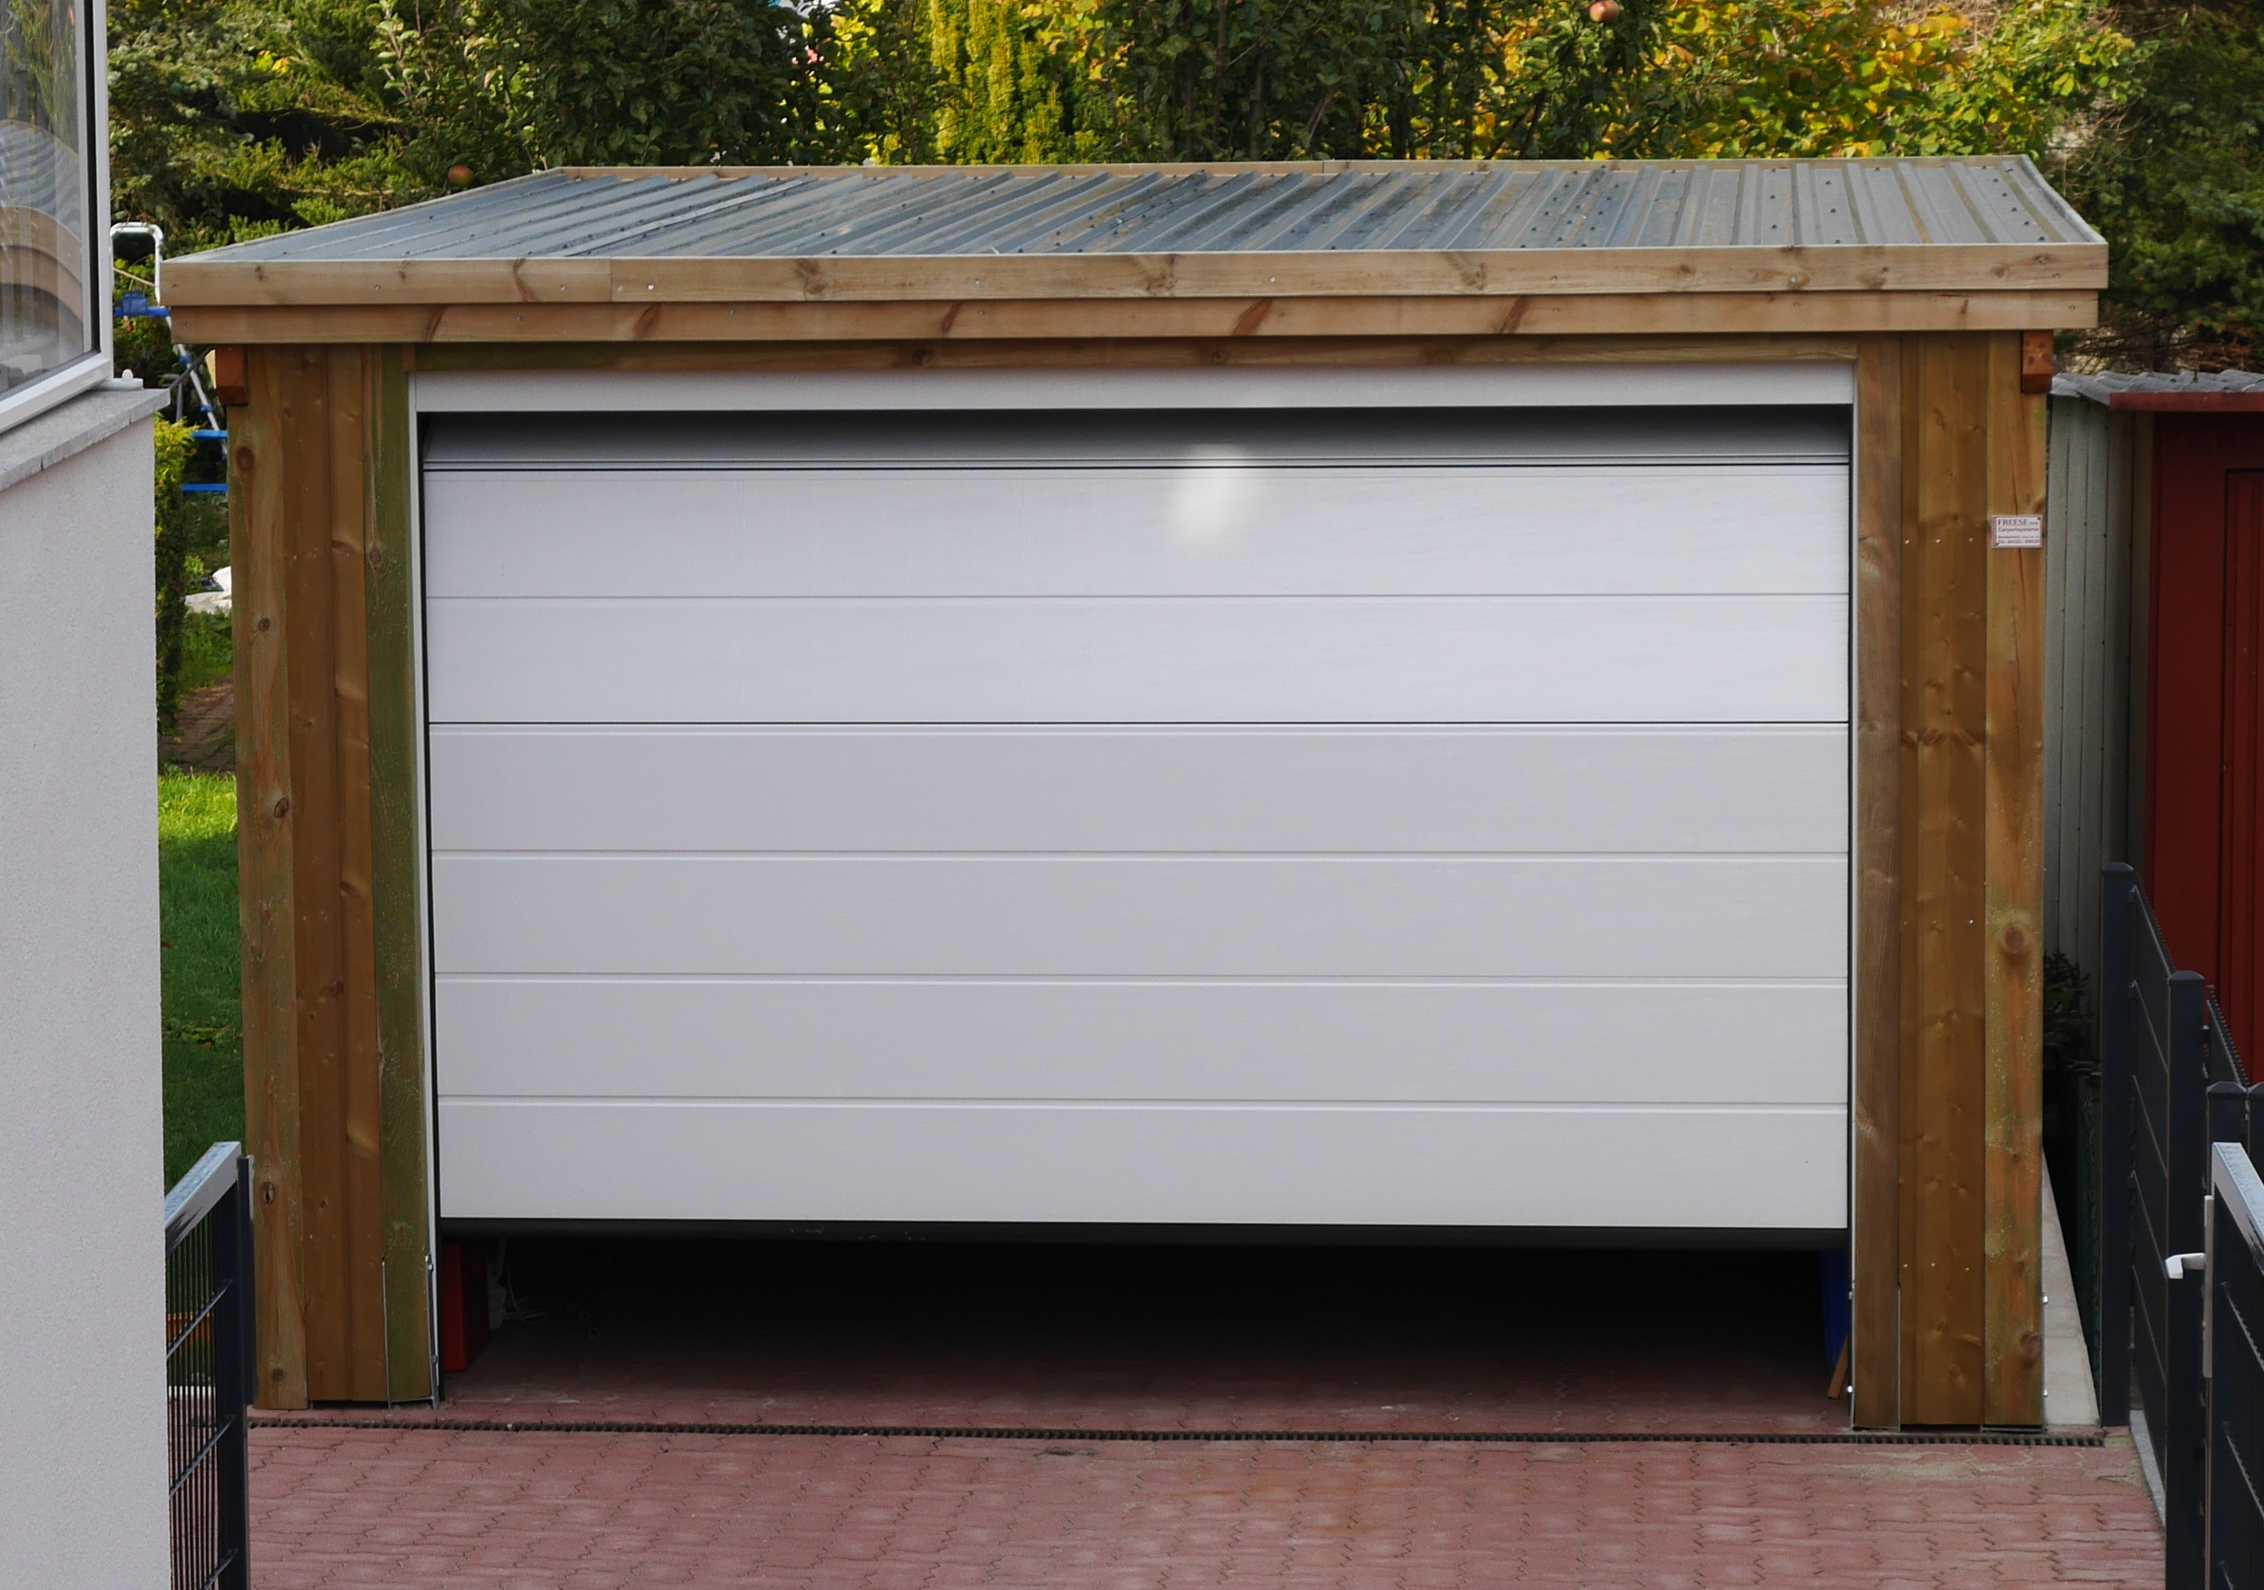 Garage aus Holz weißes Tor FREESE Holz